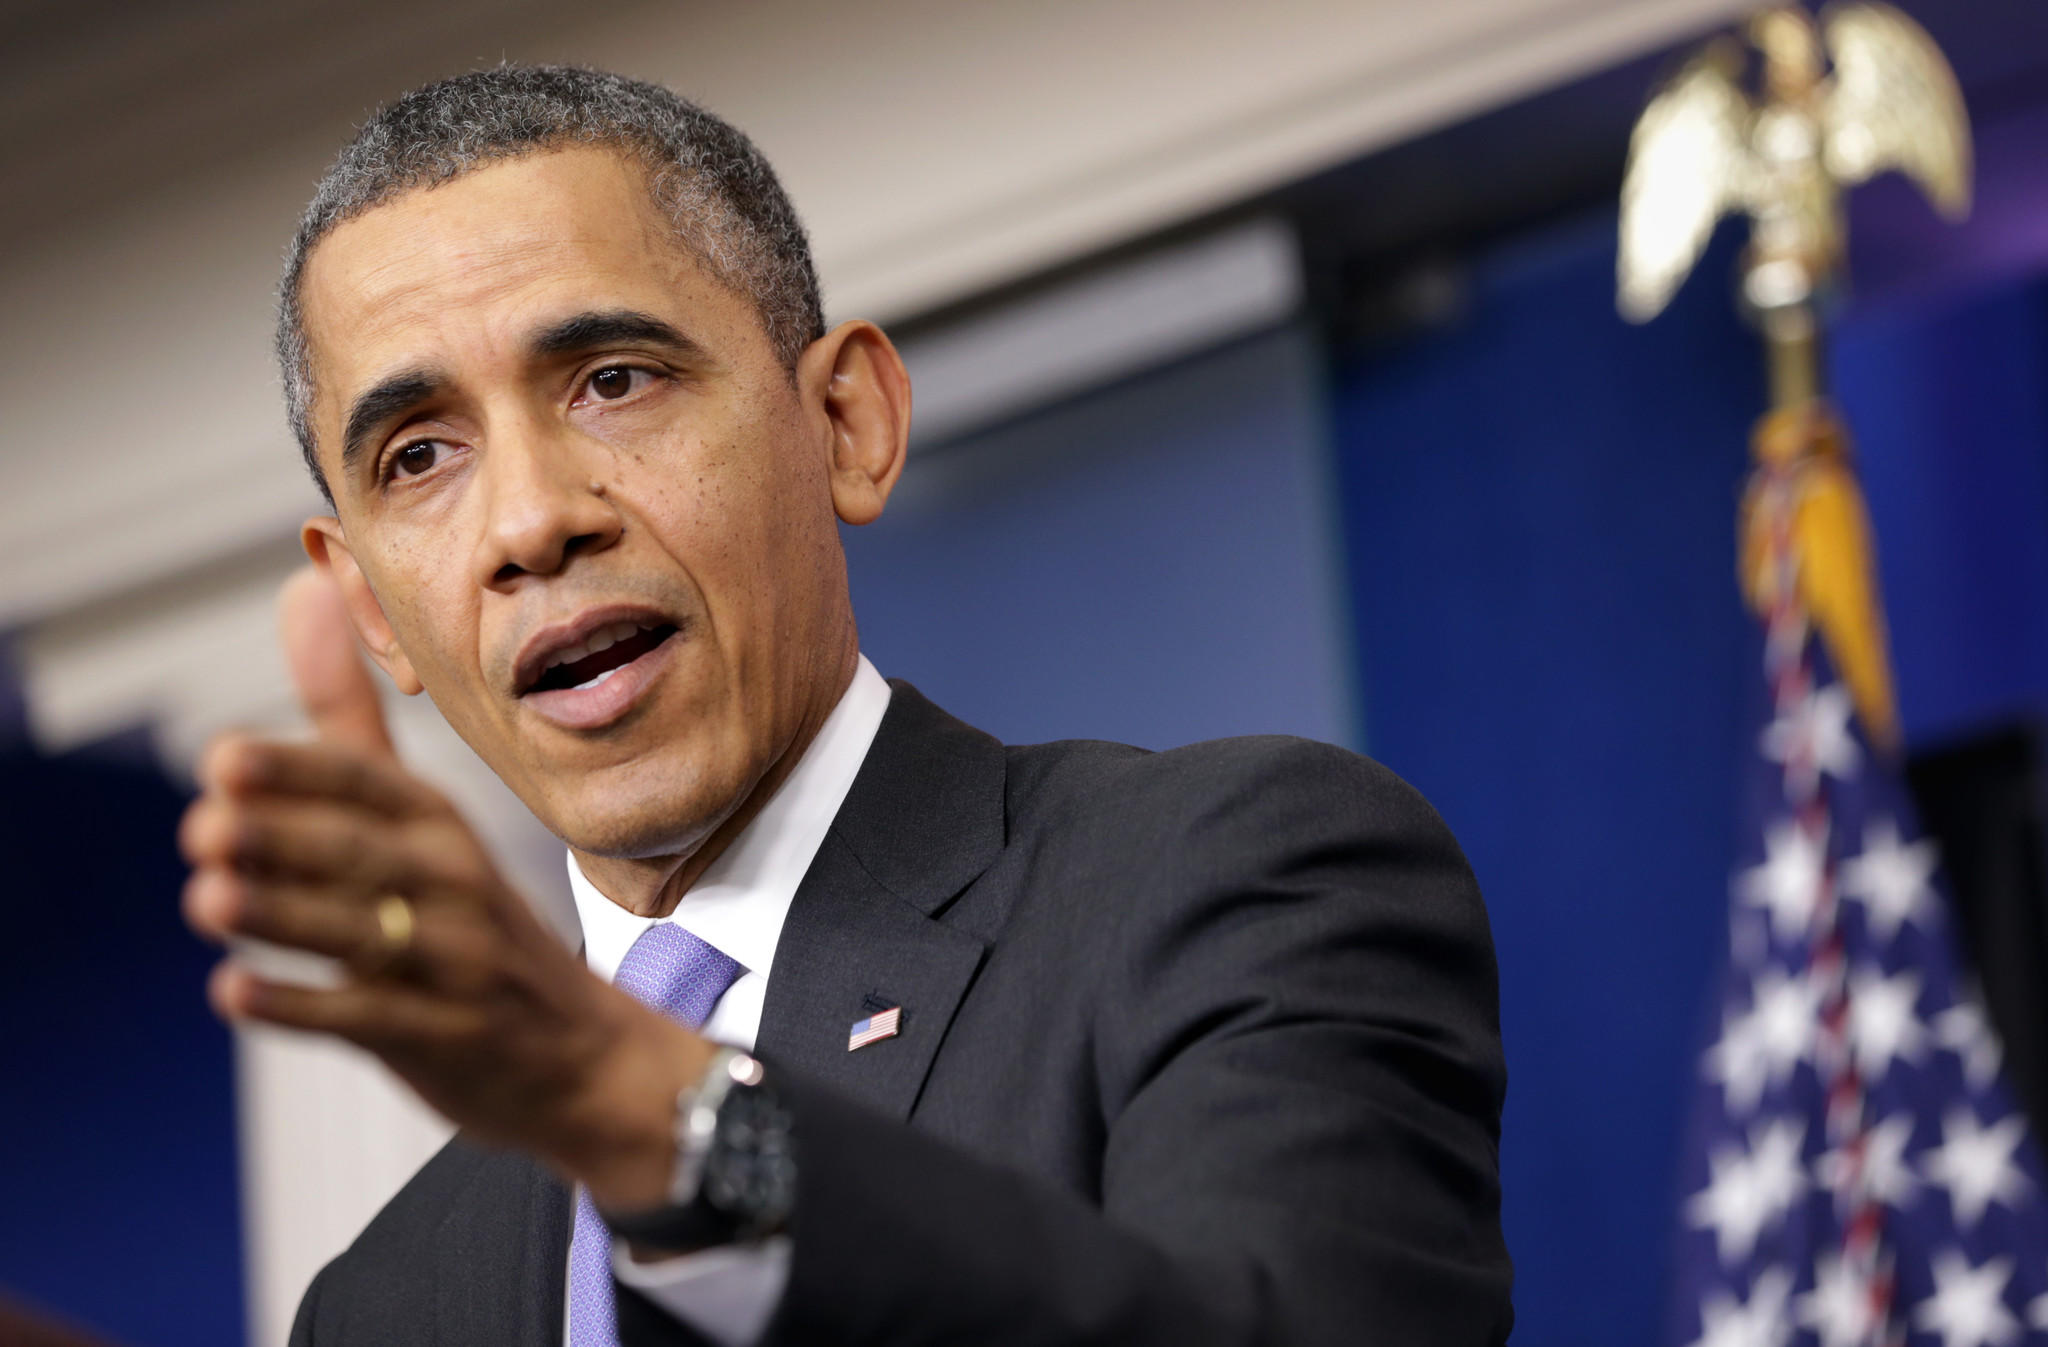 President Barack Obama speaks during a news conference at the James Brady Press Briefing Room of the White House.